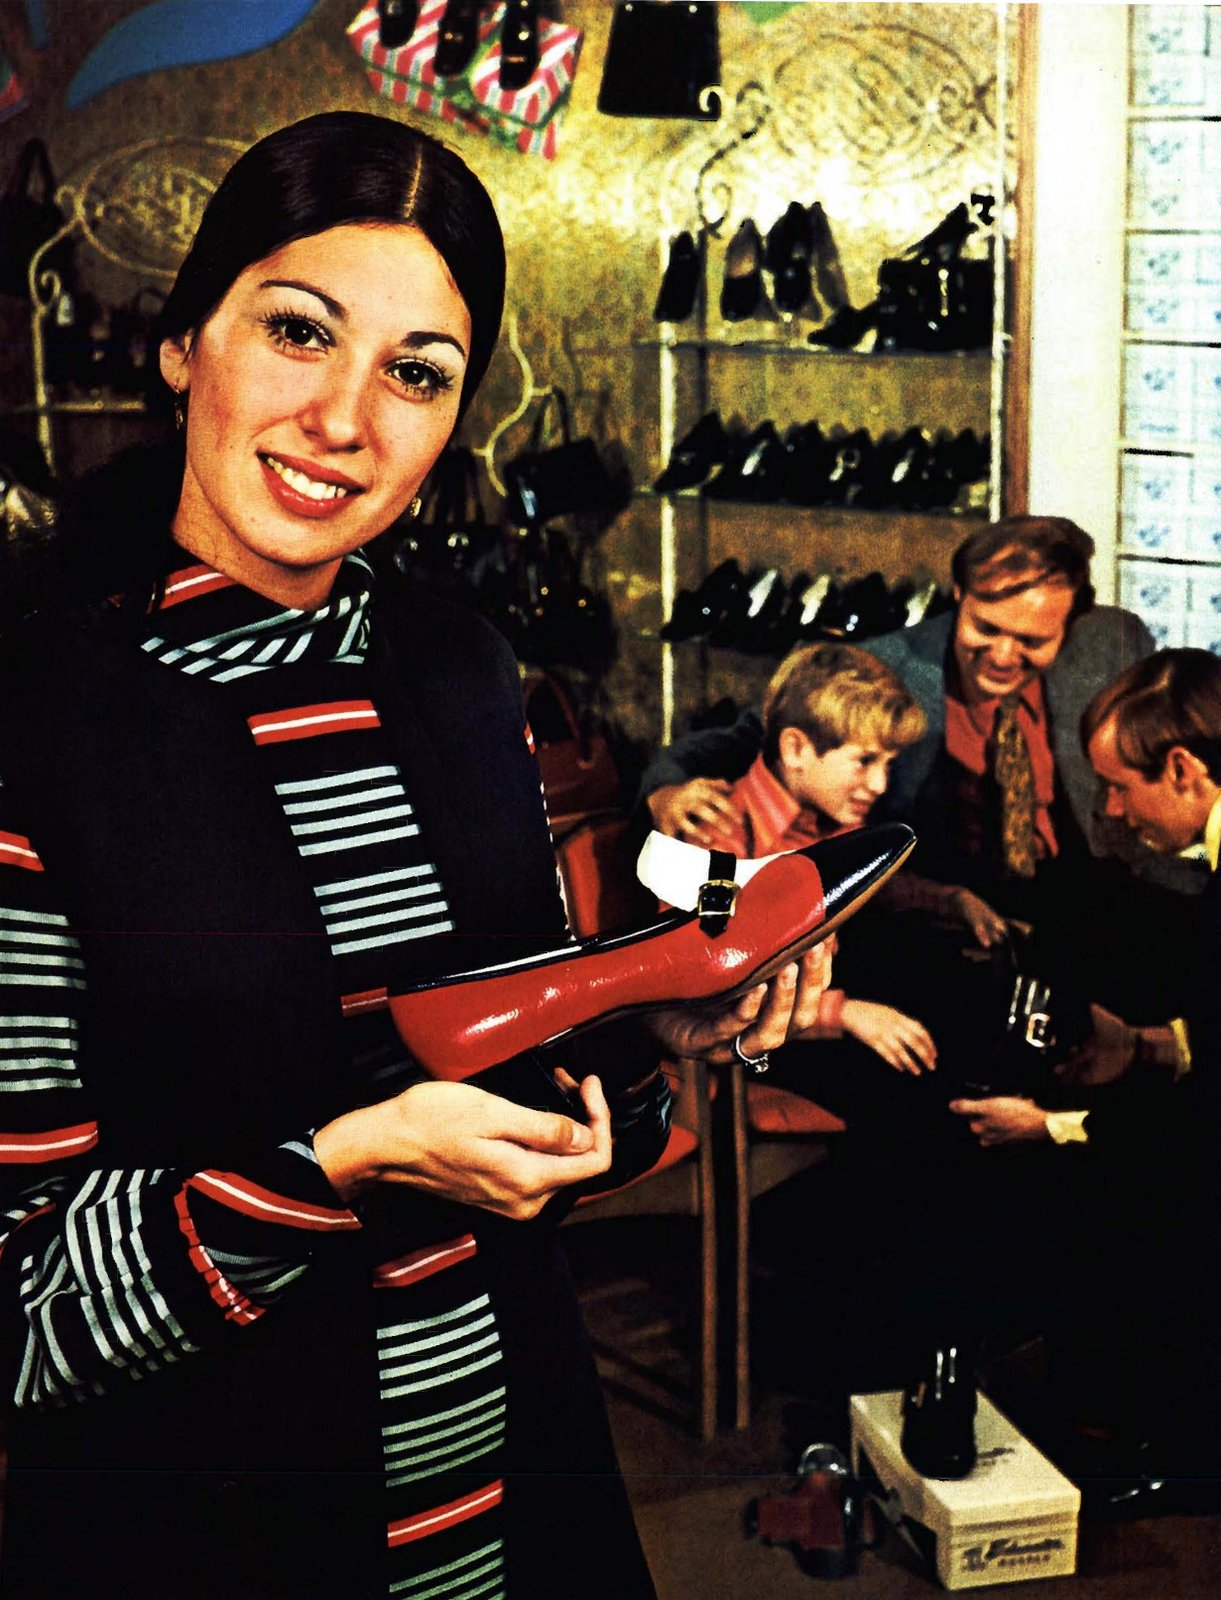 Retro red white and black shoe for women (1971)